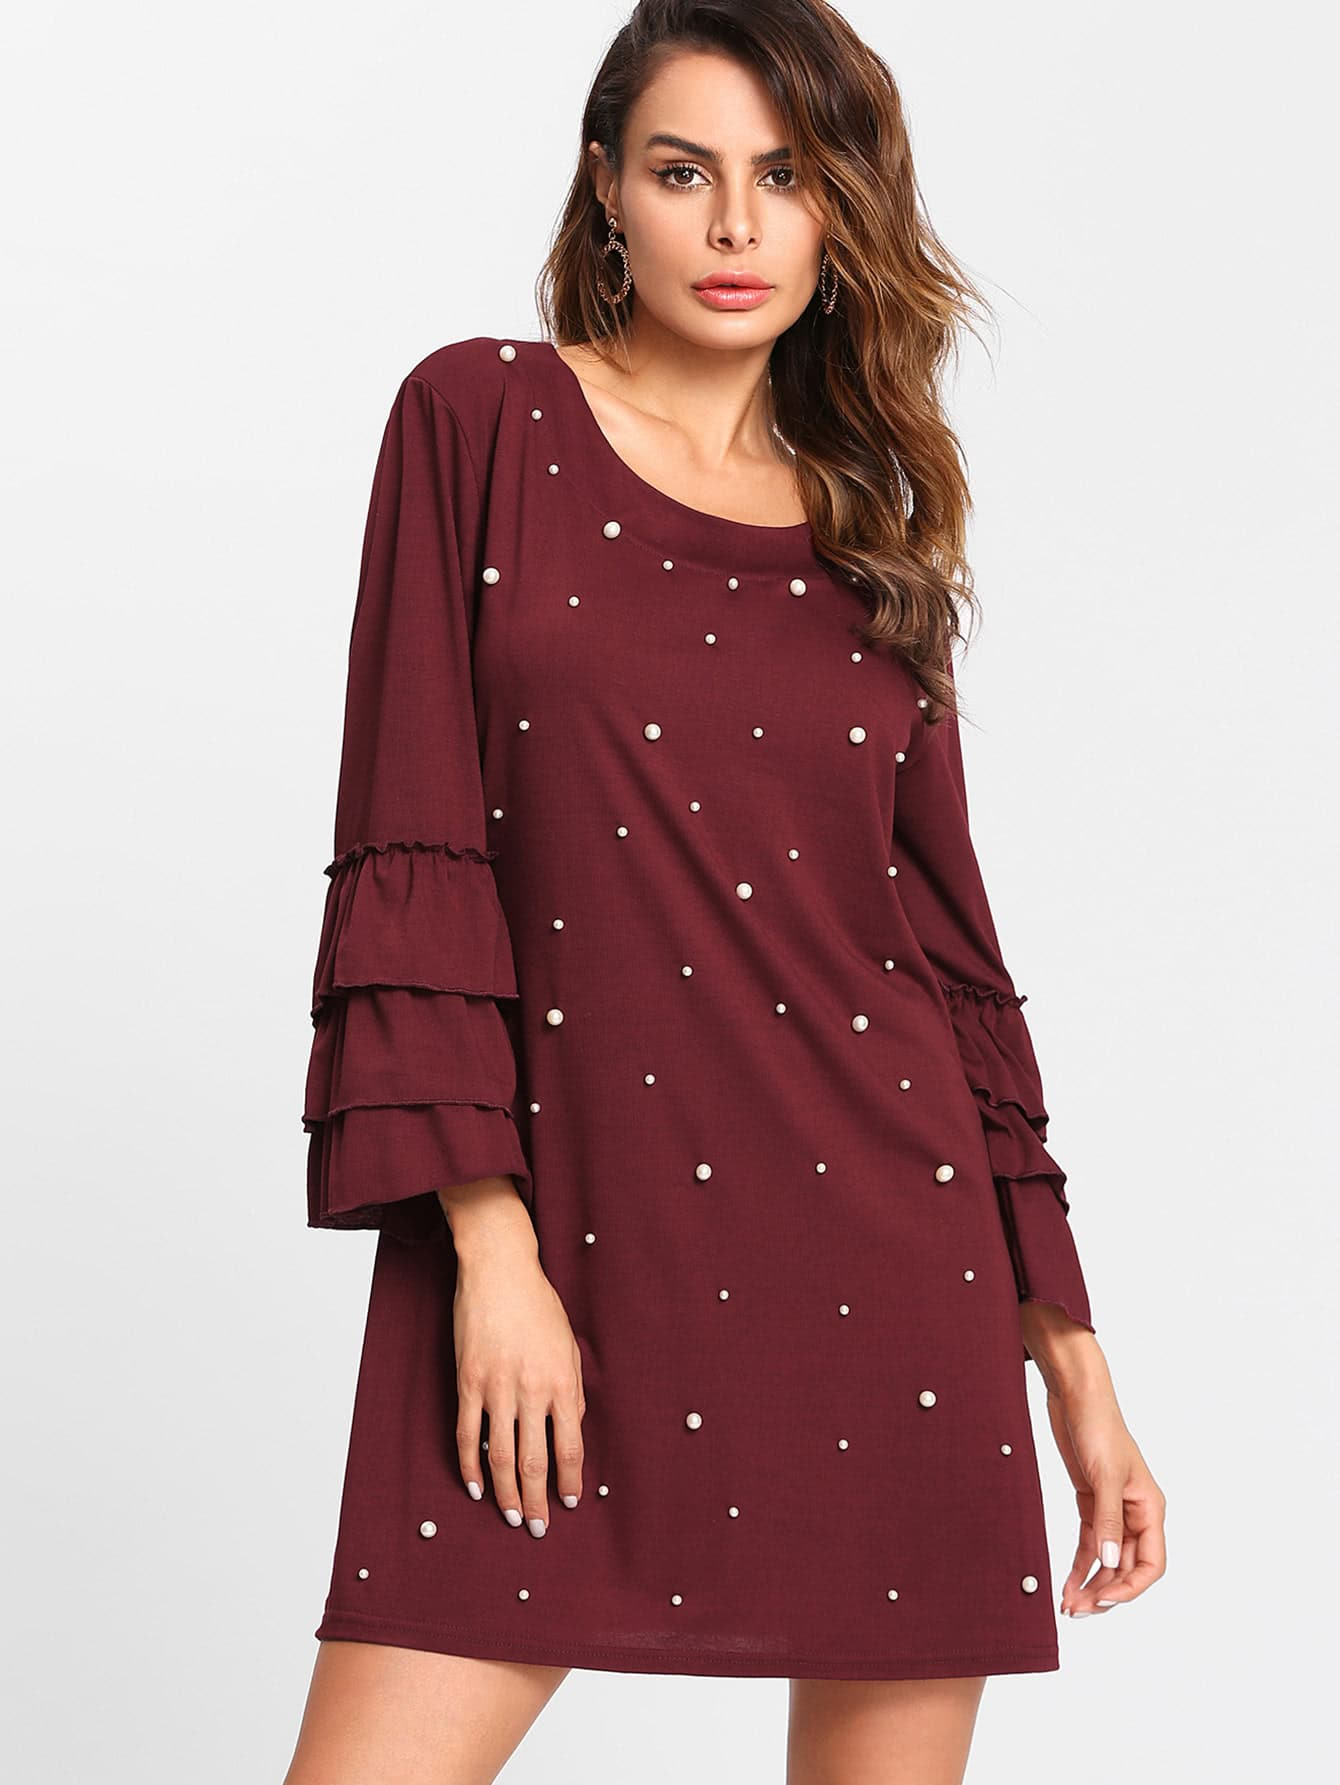 Pearl Beading Layered Sleeve Tee Dress frill layered pearl detail sweatshirt dress